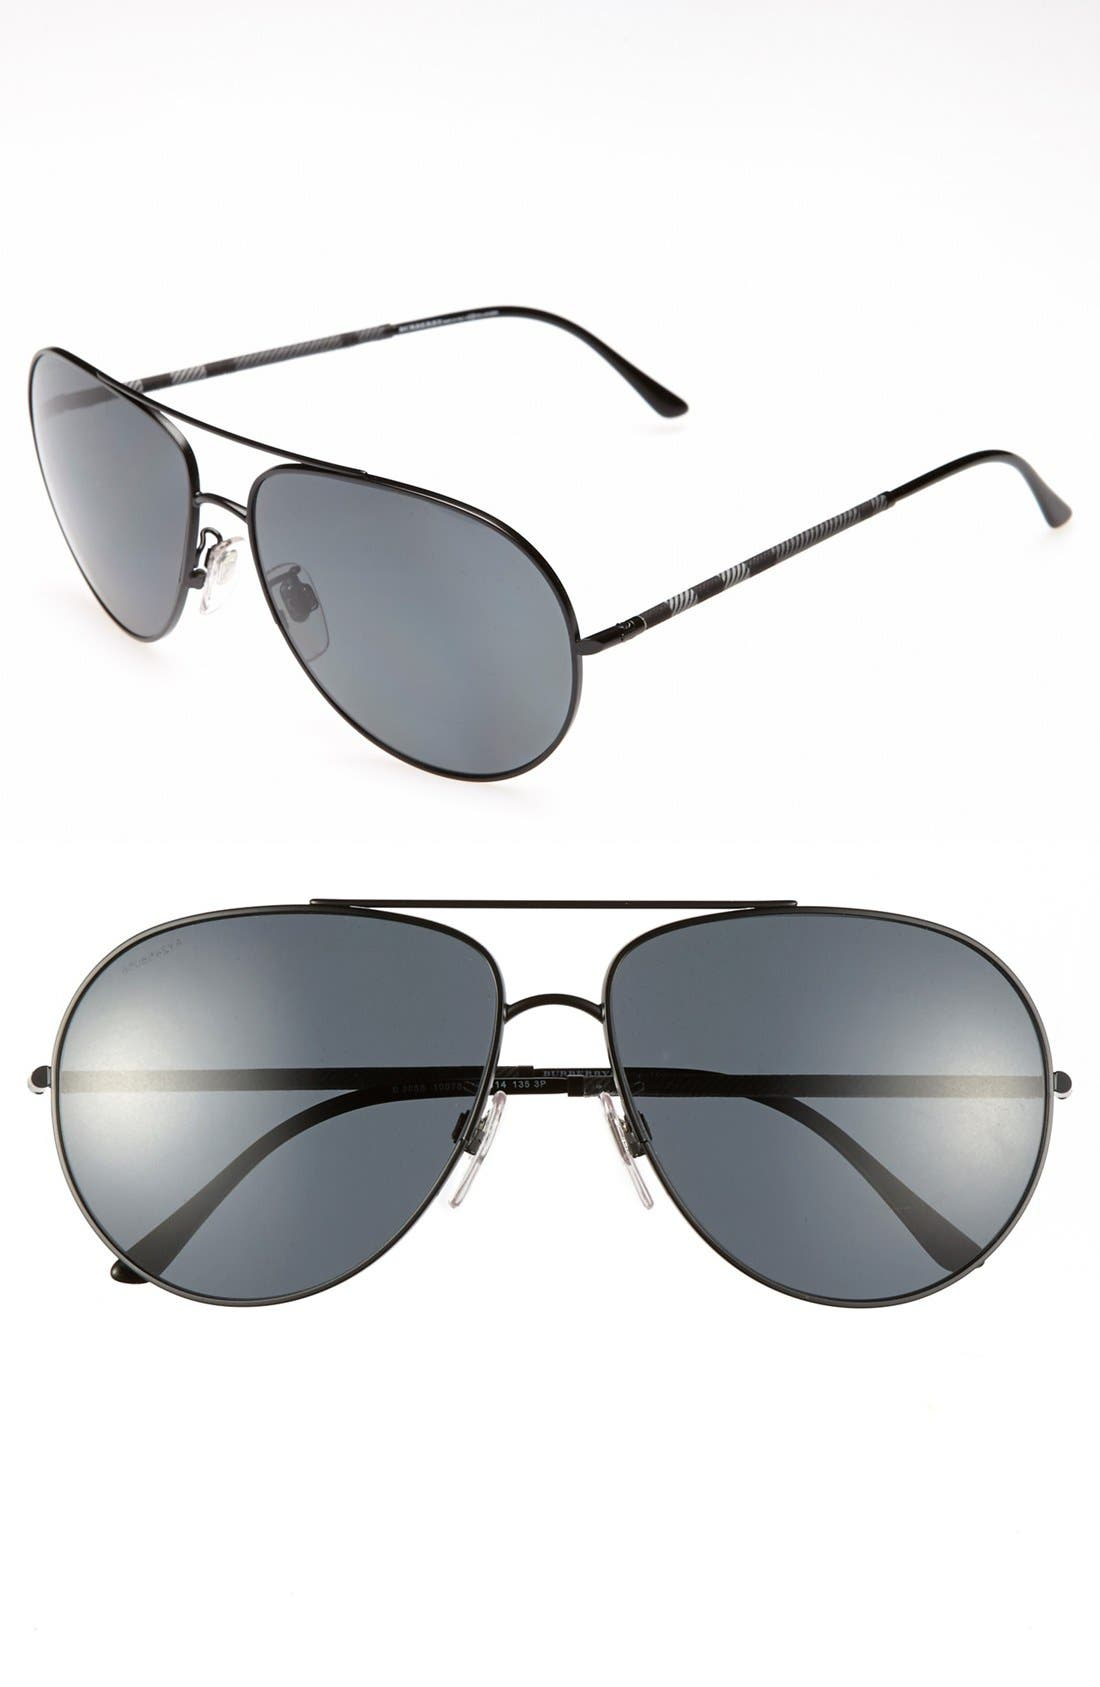 Main Image - Burberry 60mm Aviator Wrap Polarized Sunglasses